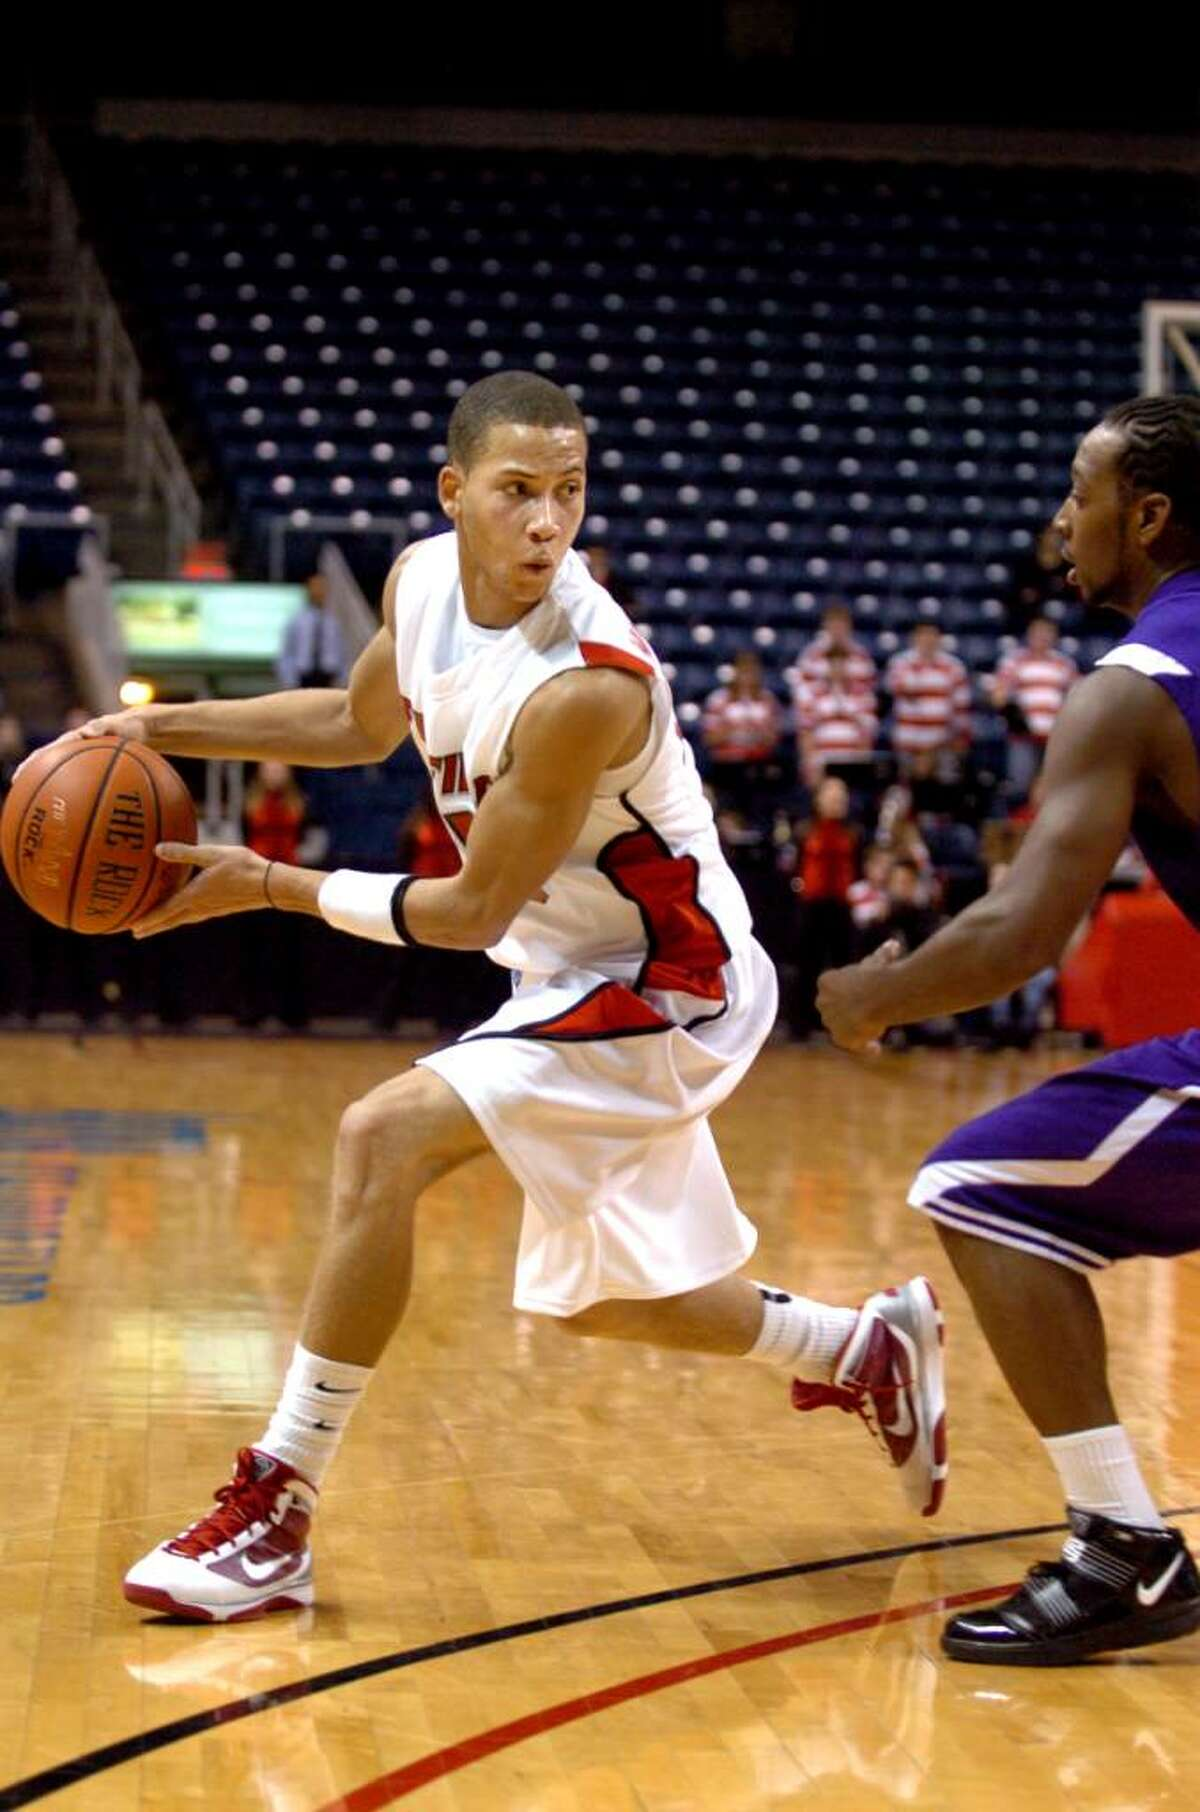 Fairfield University's Colin Nickerson looks for a hole to pass as Bridgeport University's Steve Martin defends during men's hoops at the Arena at Harbor Yard in Bridgeport.